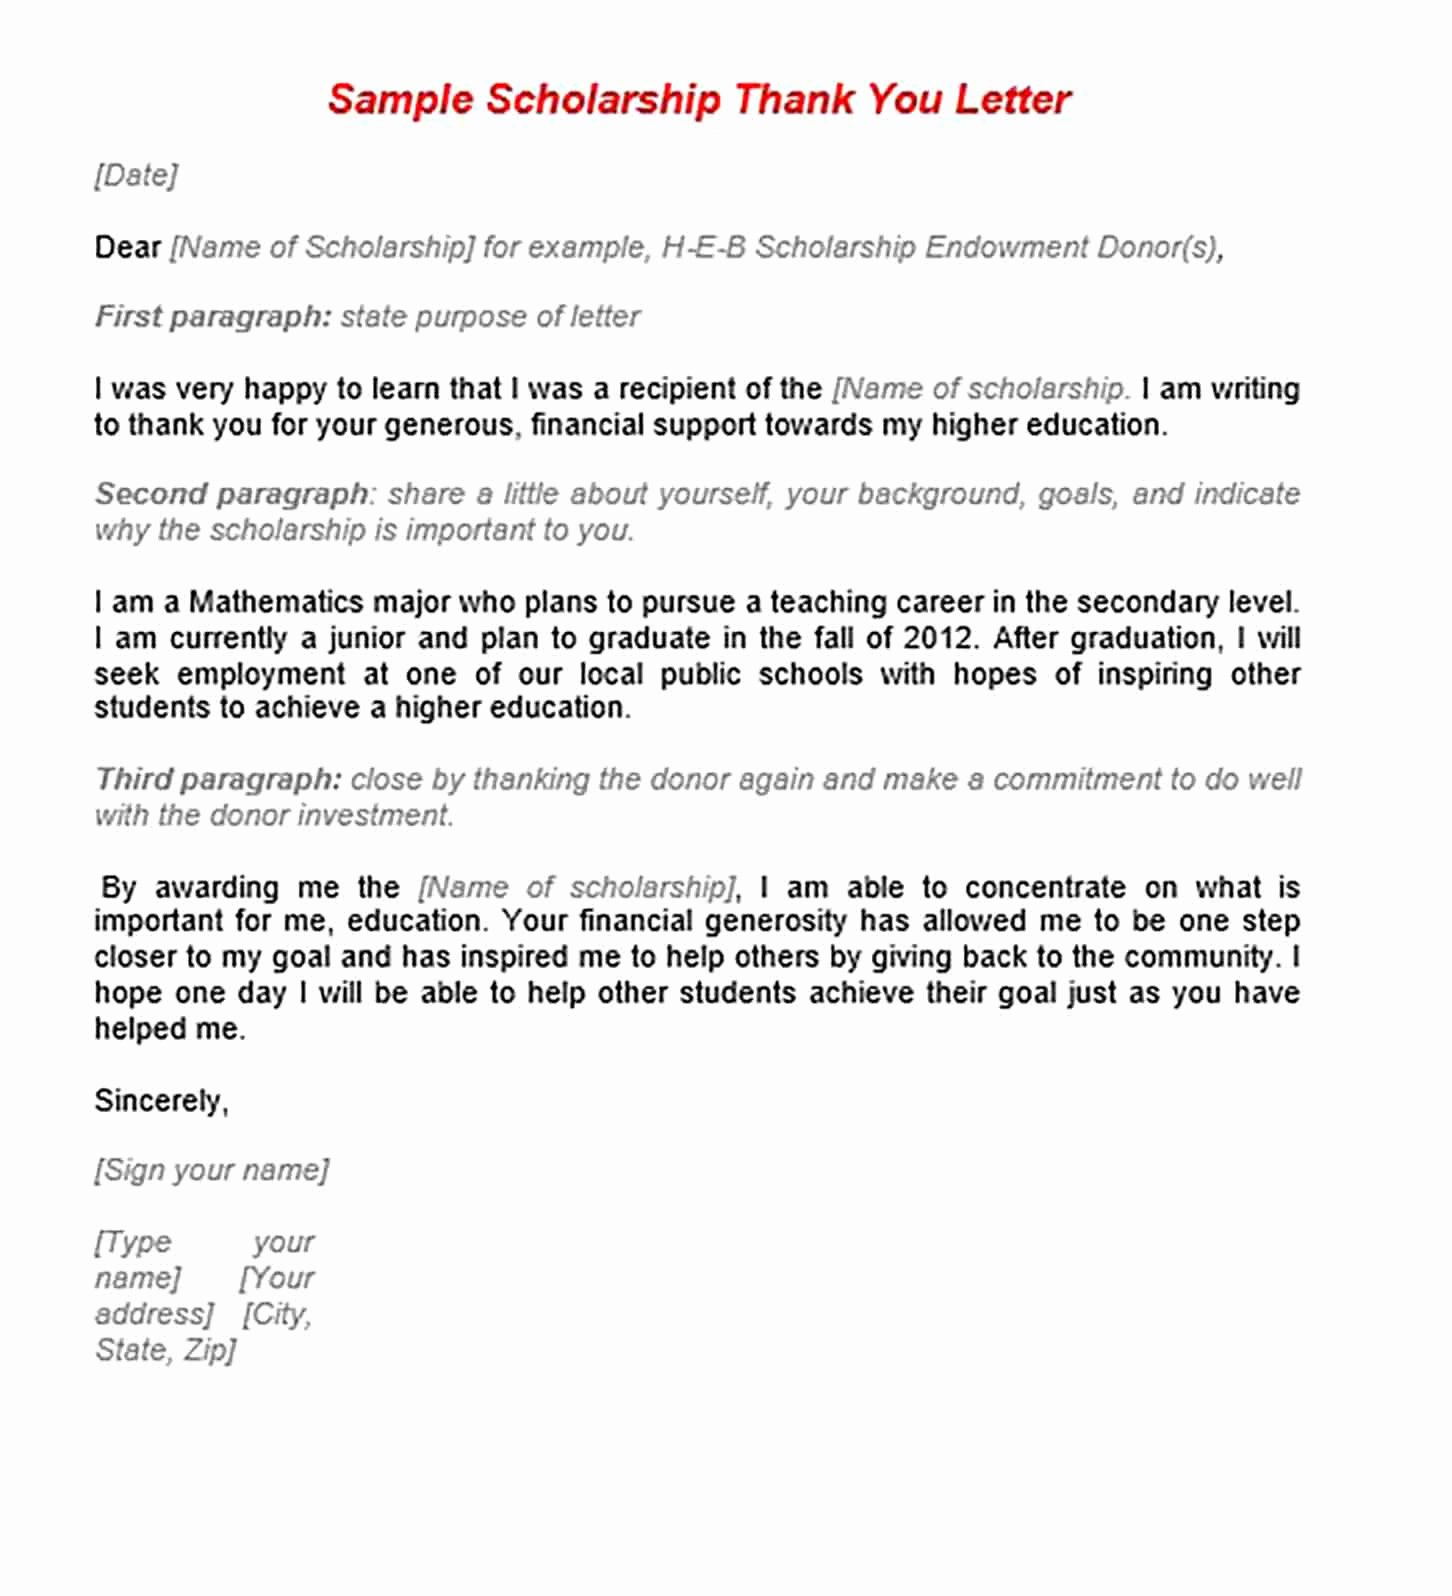 Sample Scholarship Thank You Letter Elegant 11 Scholarship Thank You Letter Sample for Doc Pdf Words